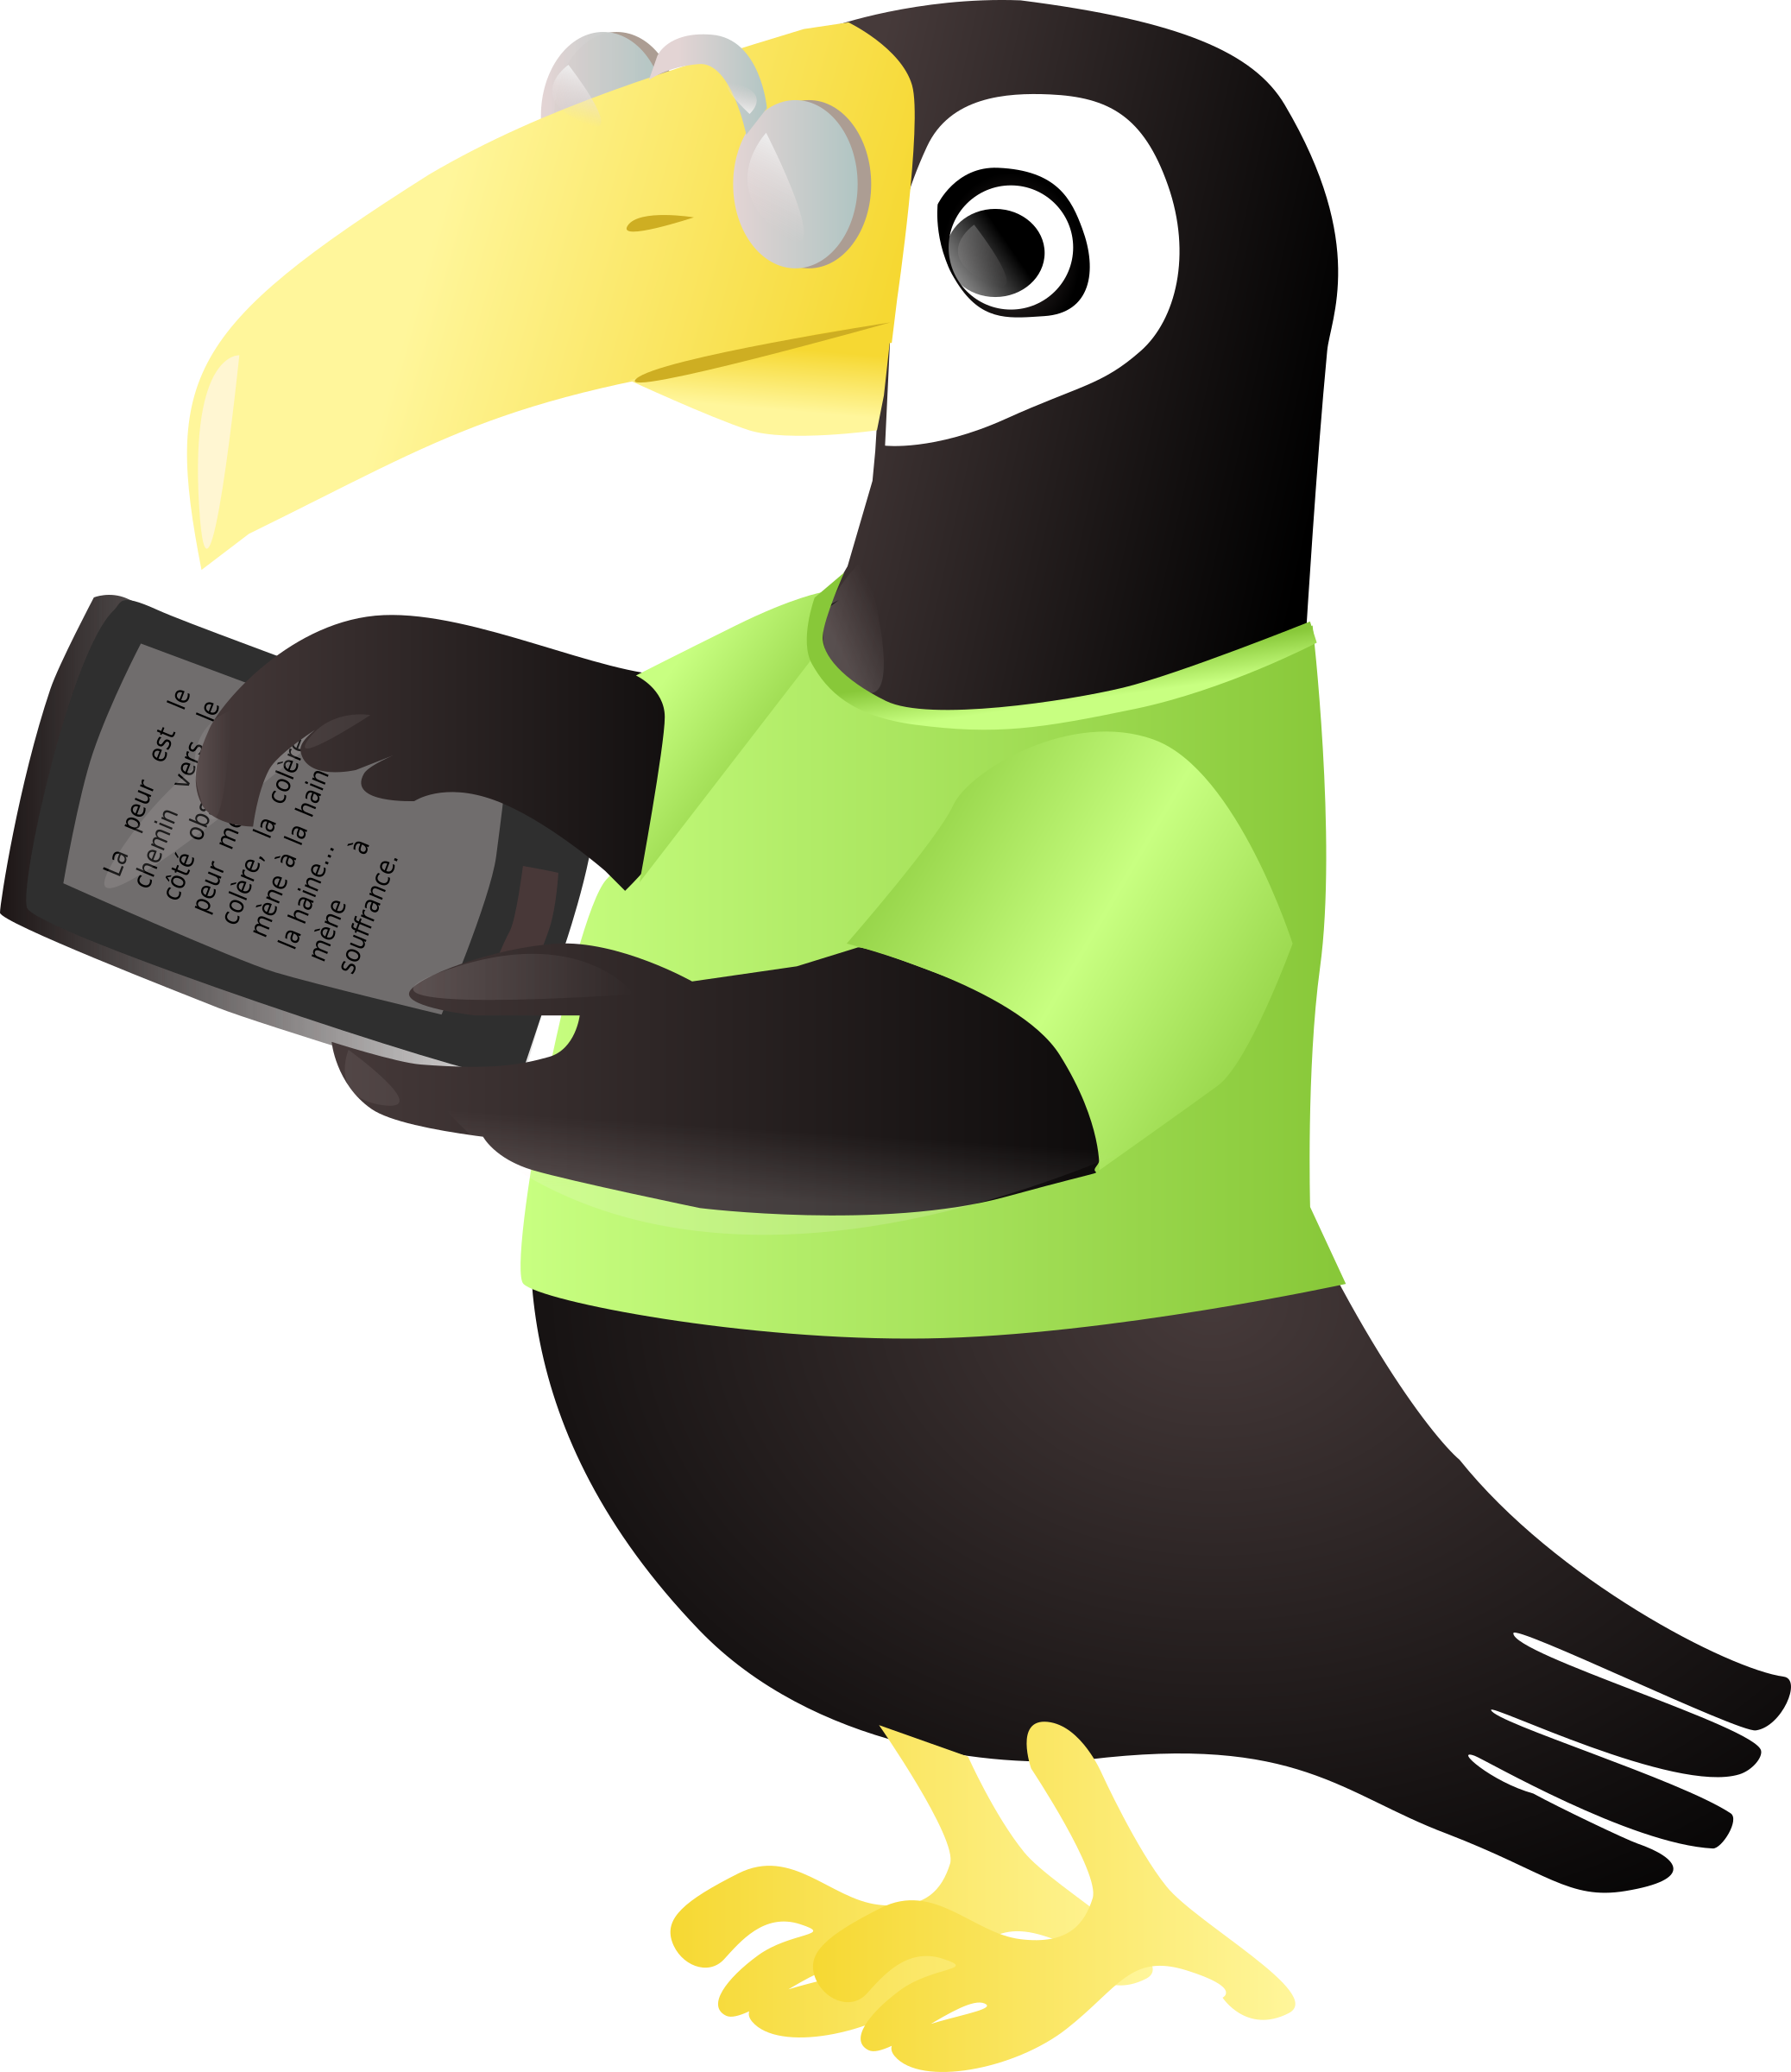 Toucan with tablet by sissone